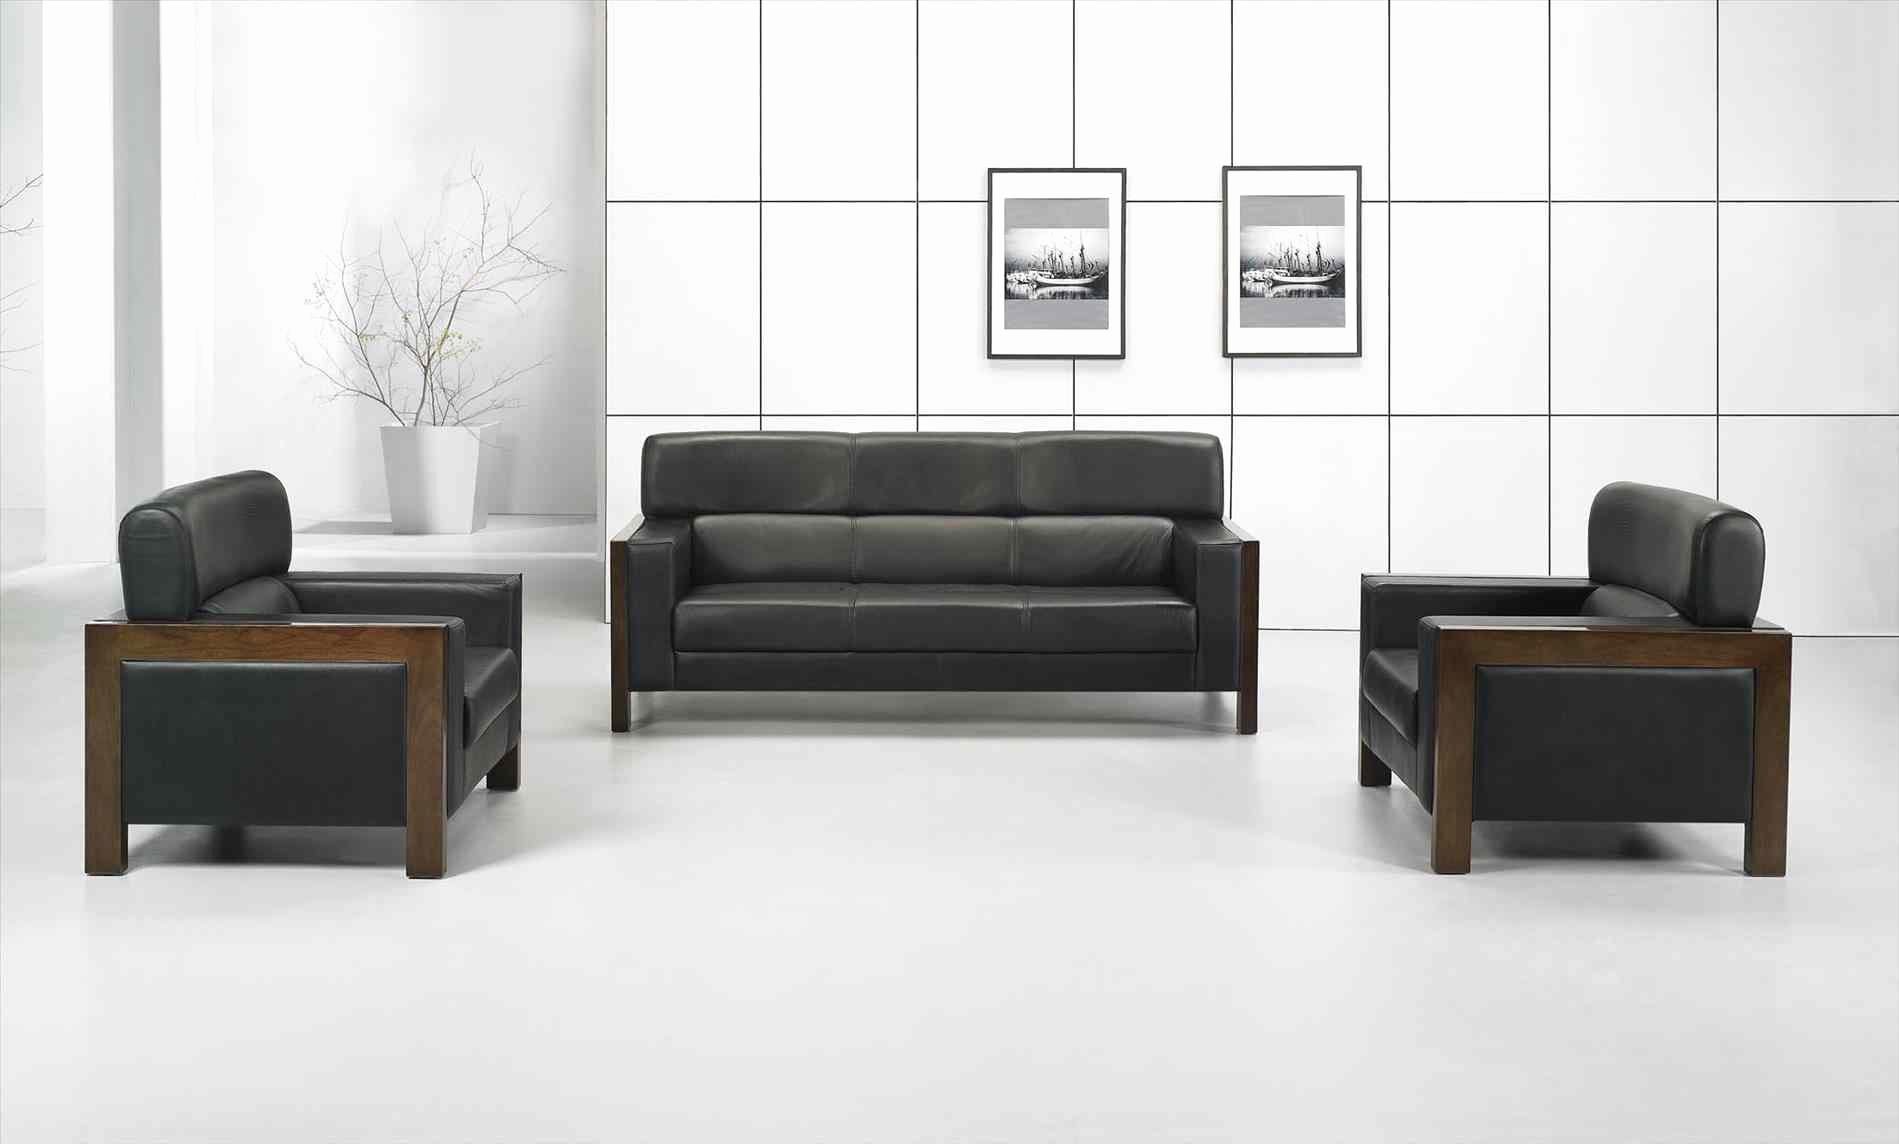 Office Sofas And Chairs Kebo Futon Sofa Bed Review Ideas Modern Graphics